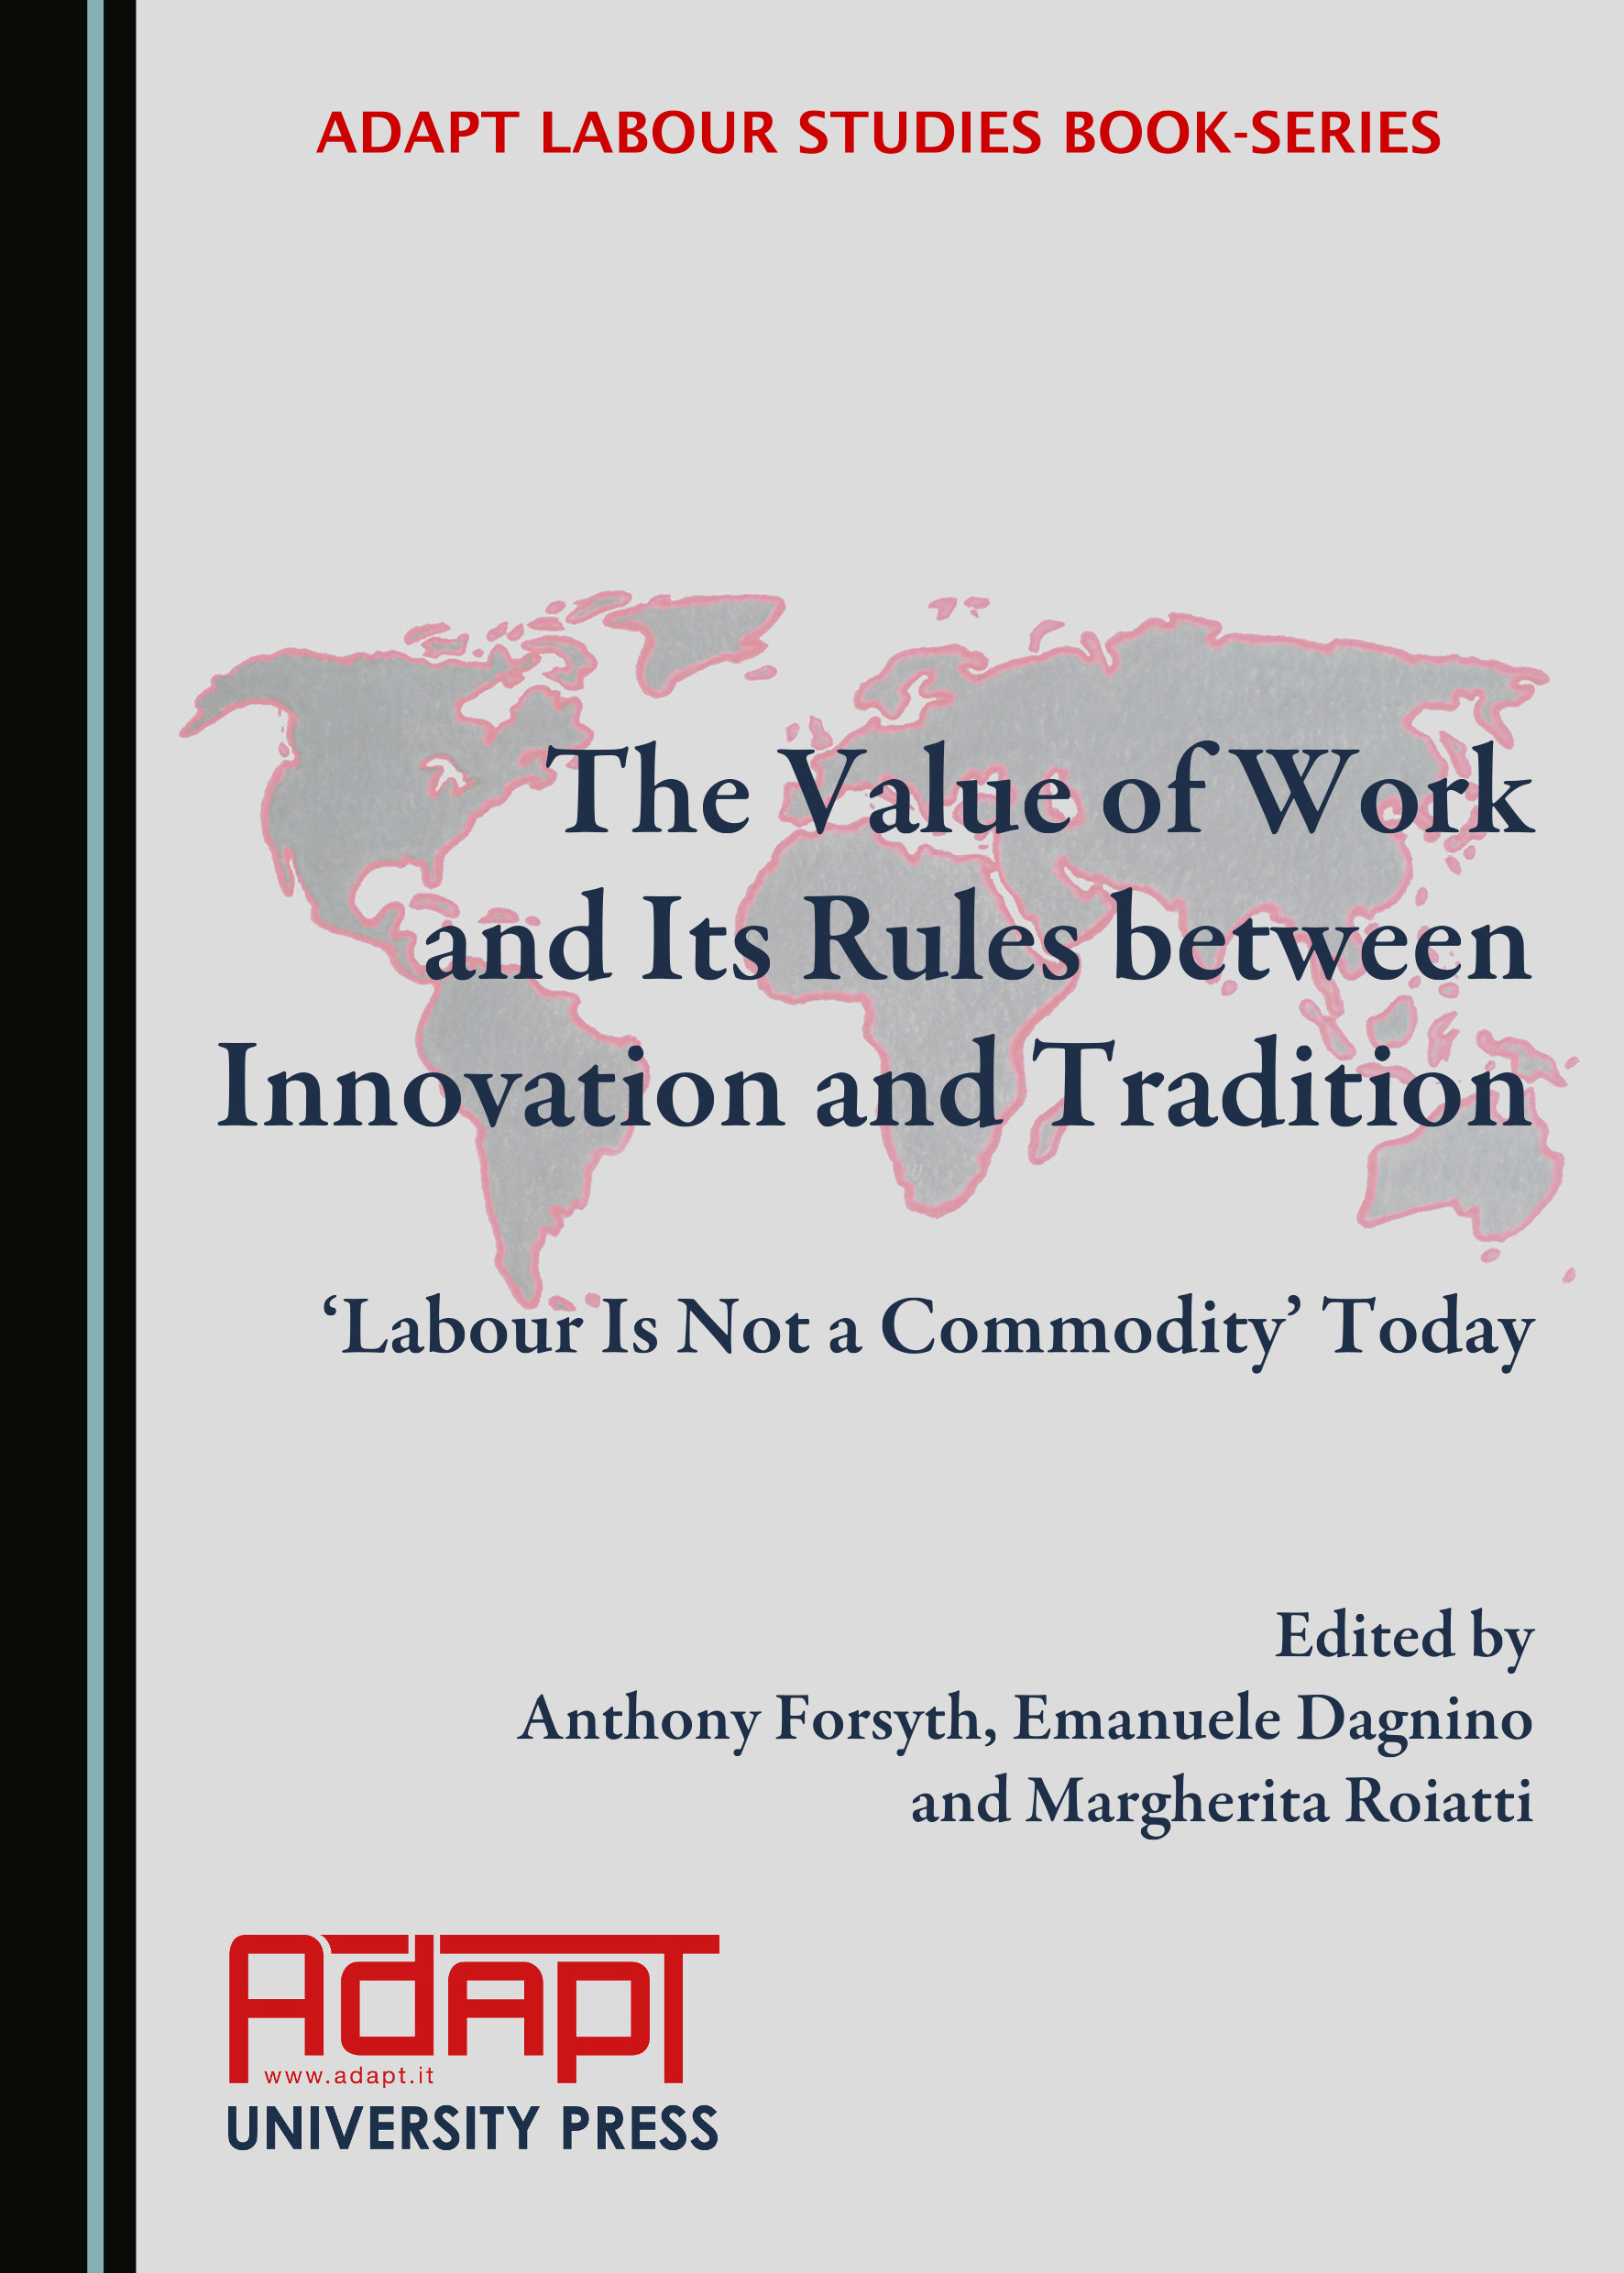 The Value of Work and Its Rules between Innovation and Tradition: 'Labour Is Not a Commodity' Today